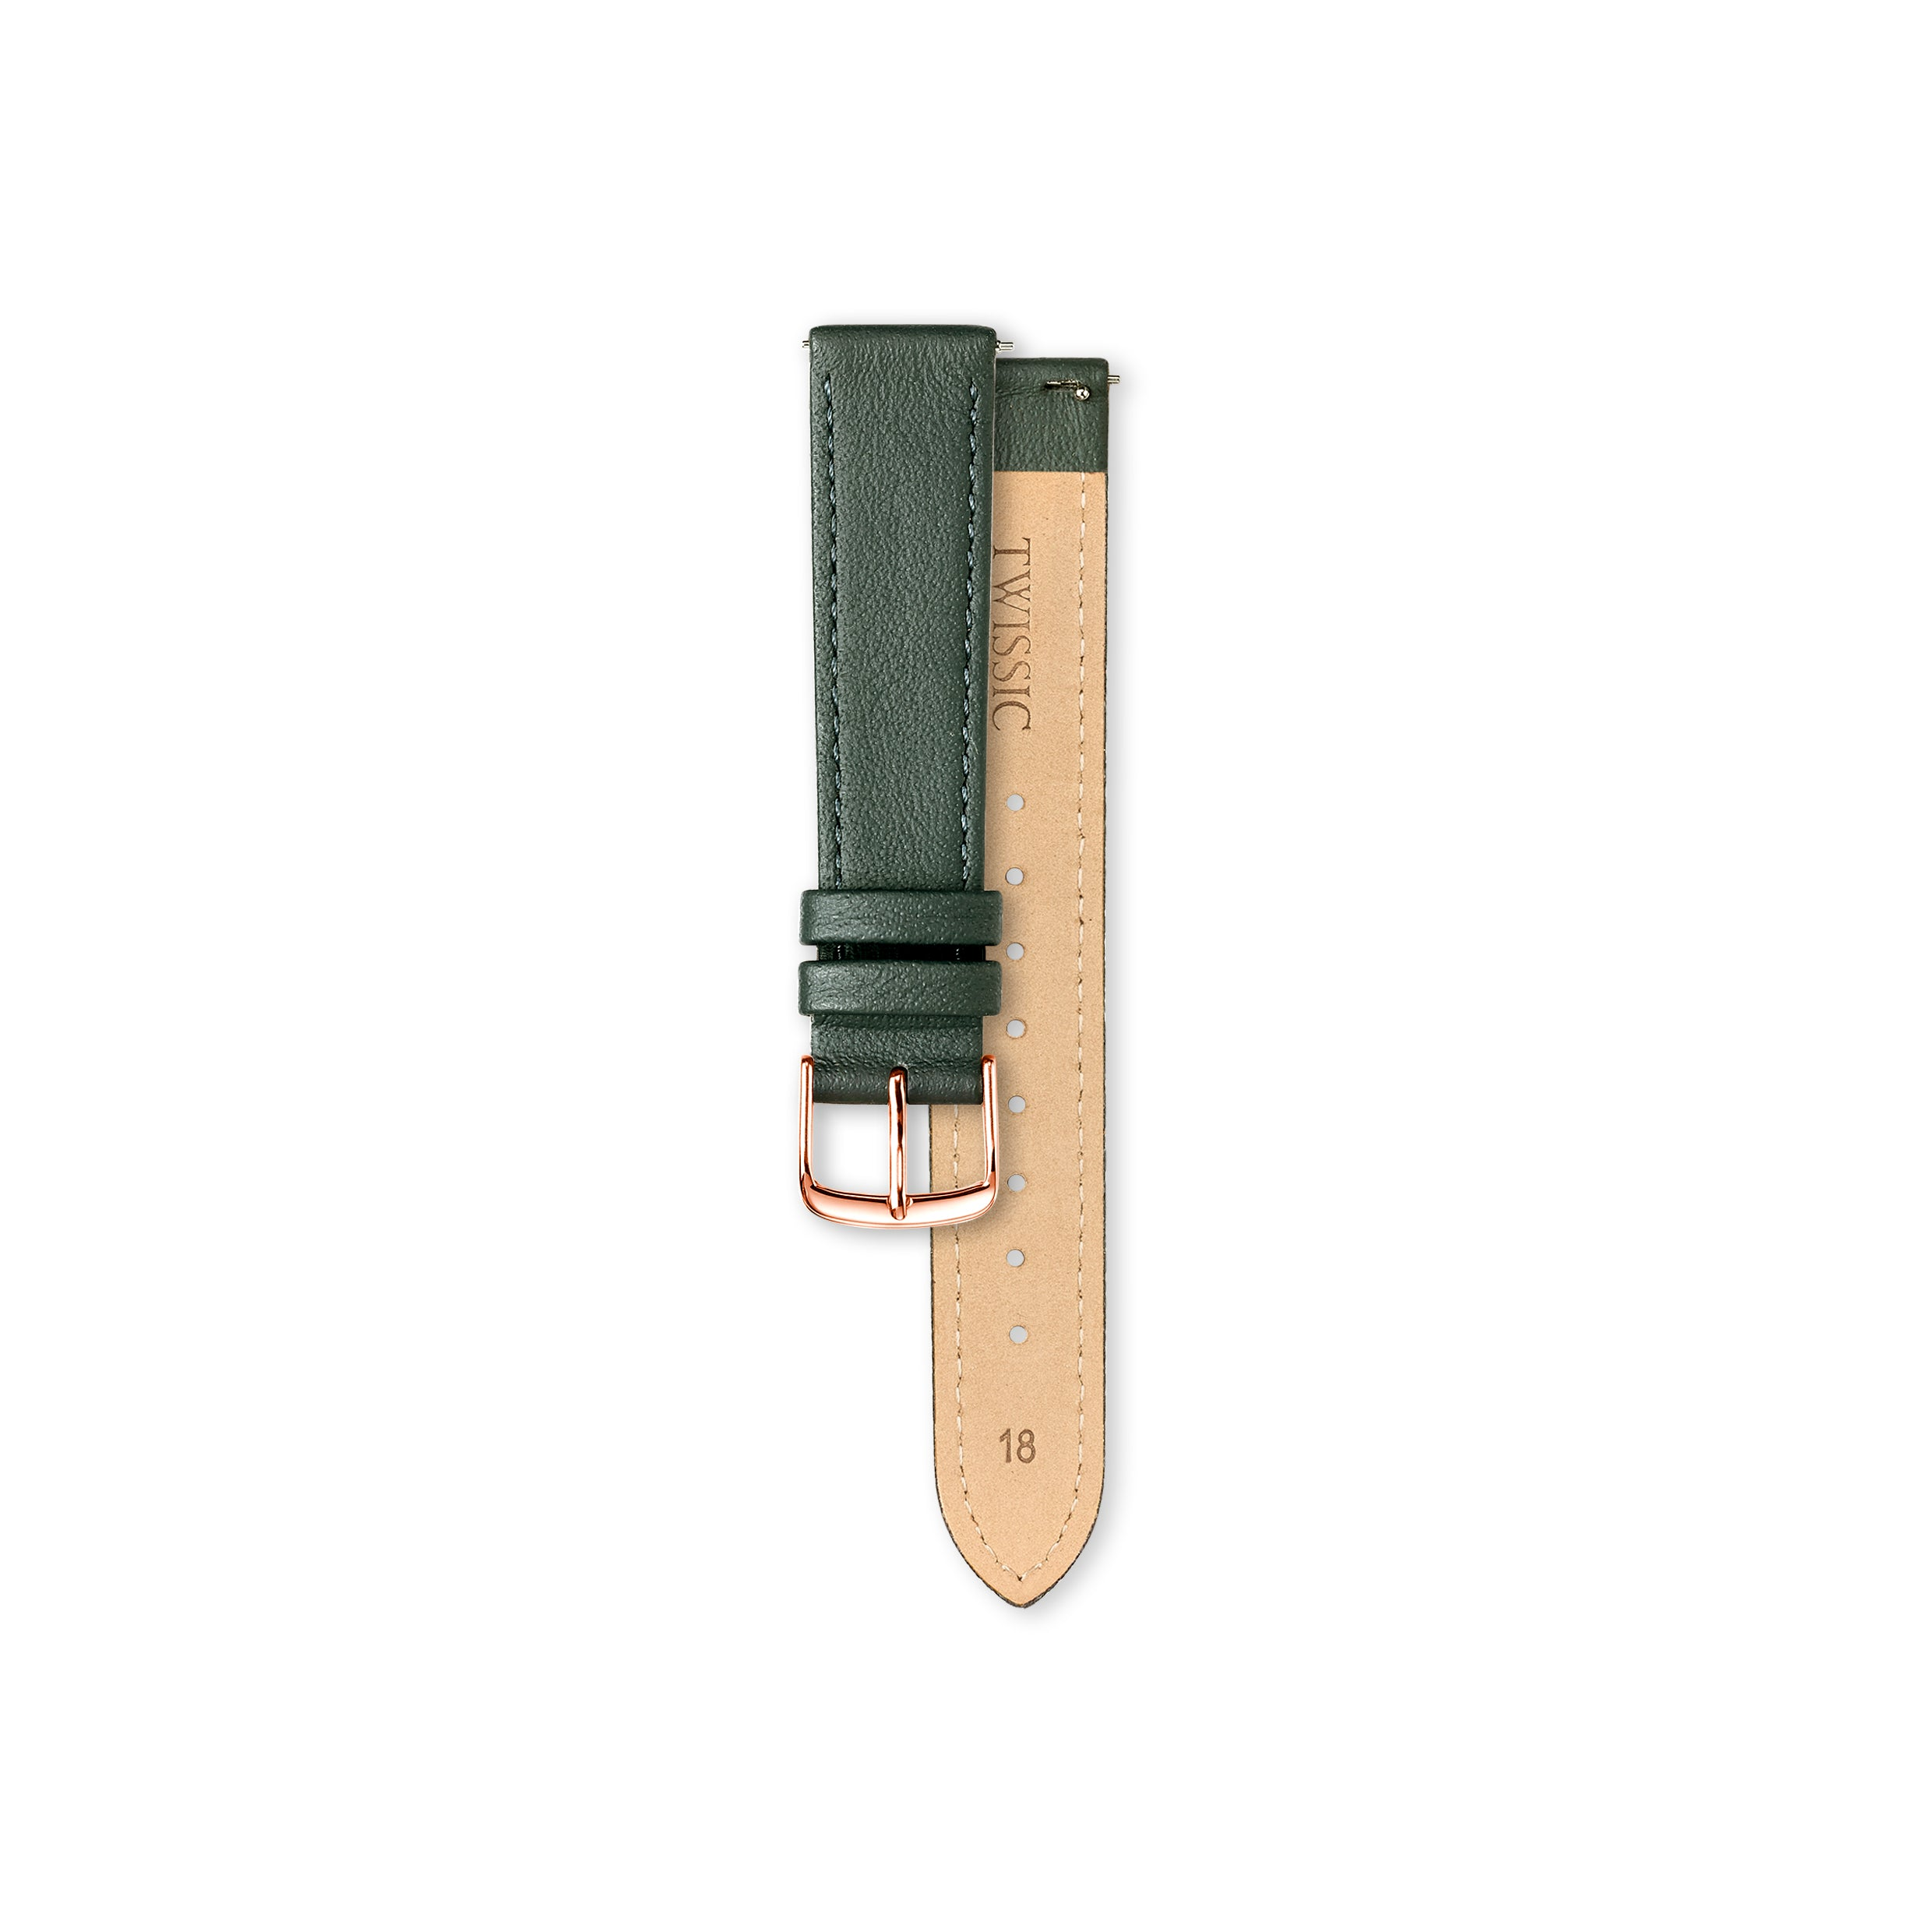 Gift set Medium (34mm/18mm) - Brick Red & Rifle Green Straps